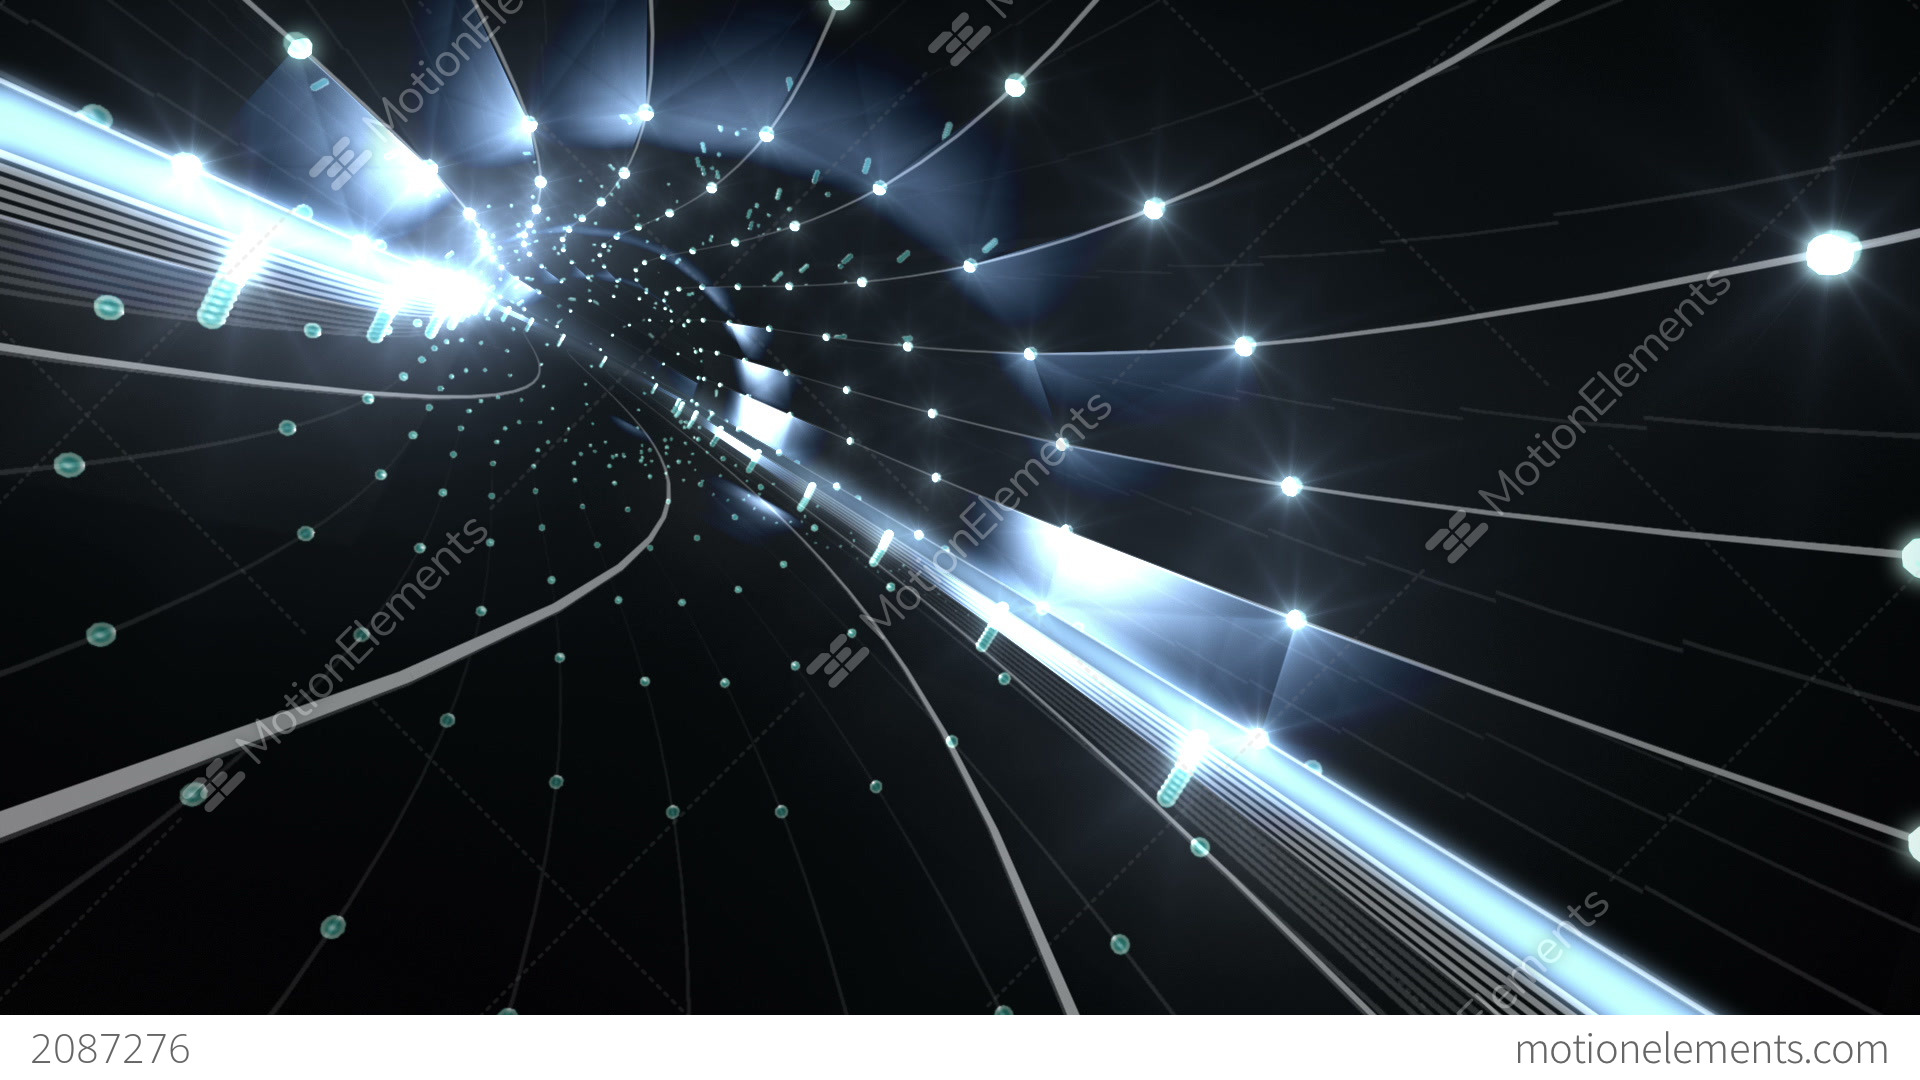 Tunnel tube space road a 4a 3 hd cg 2087276 - Space wallpaper road ...